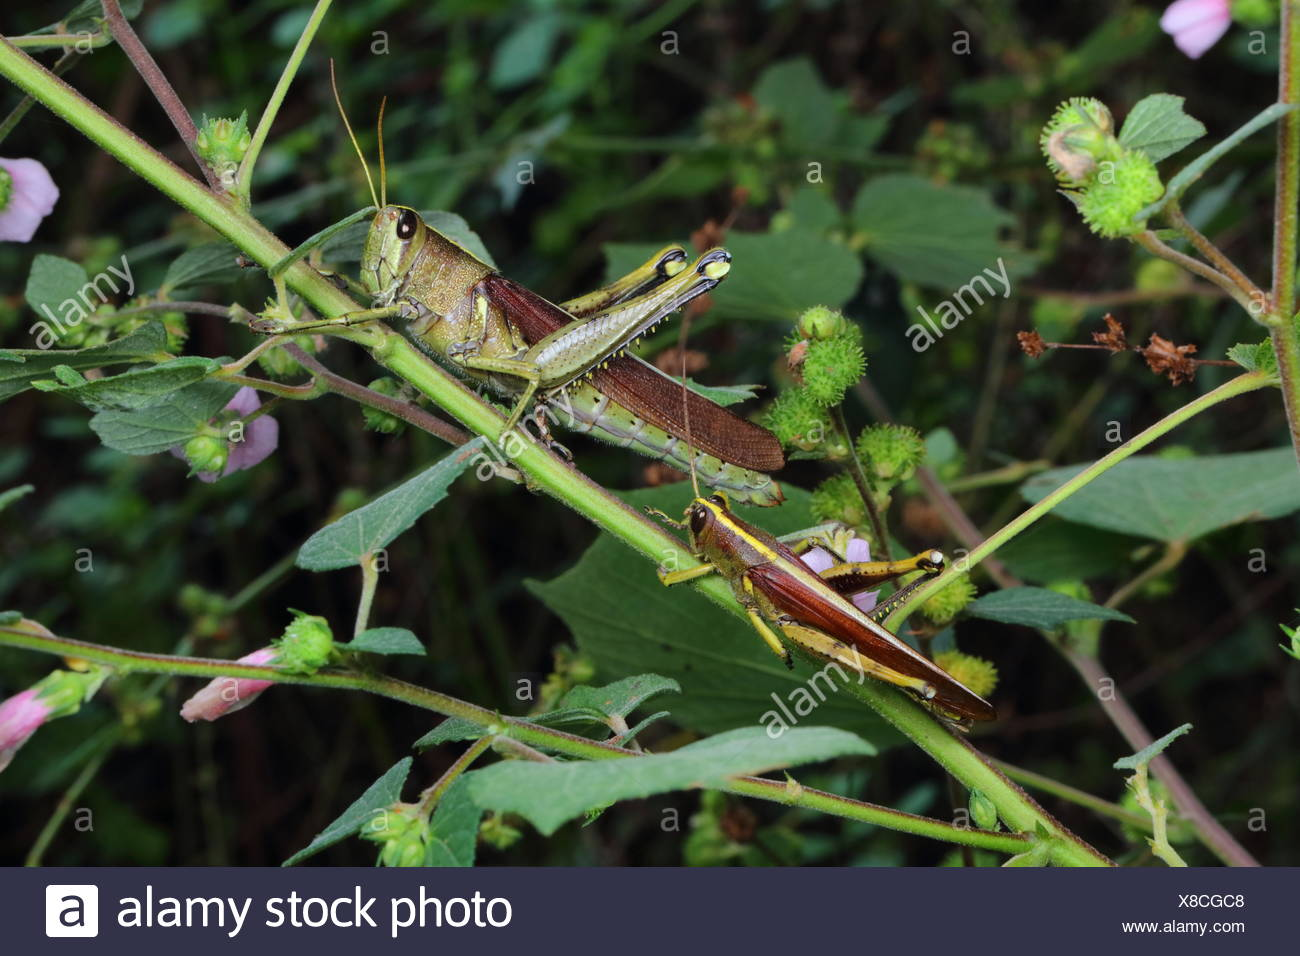 A pair of obscure bird grasshoppers, Schistocera obscura, resting on a stem. - Stock Image